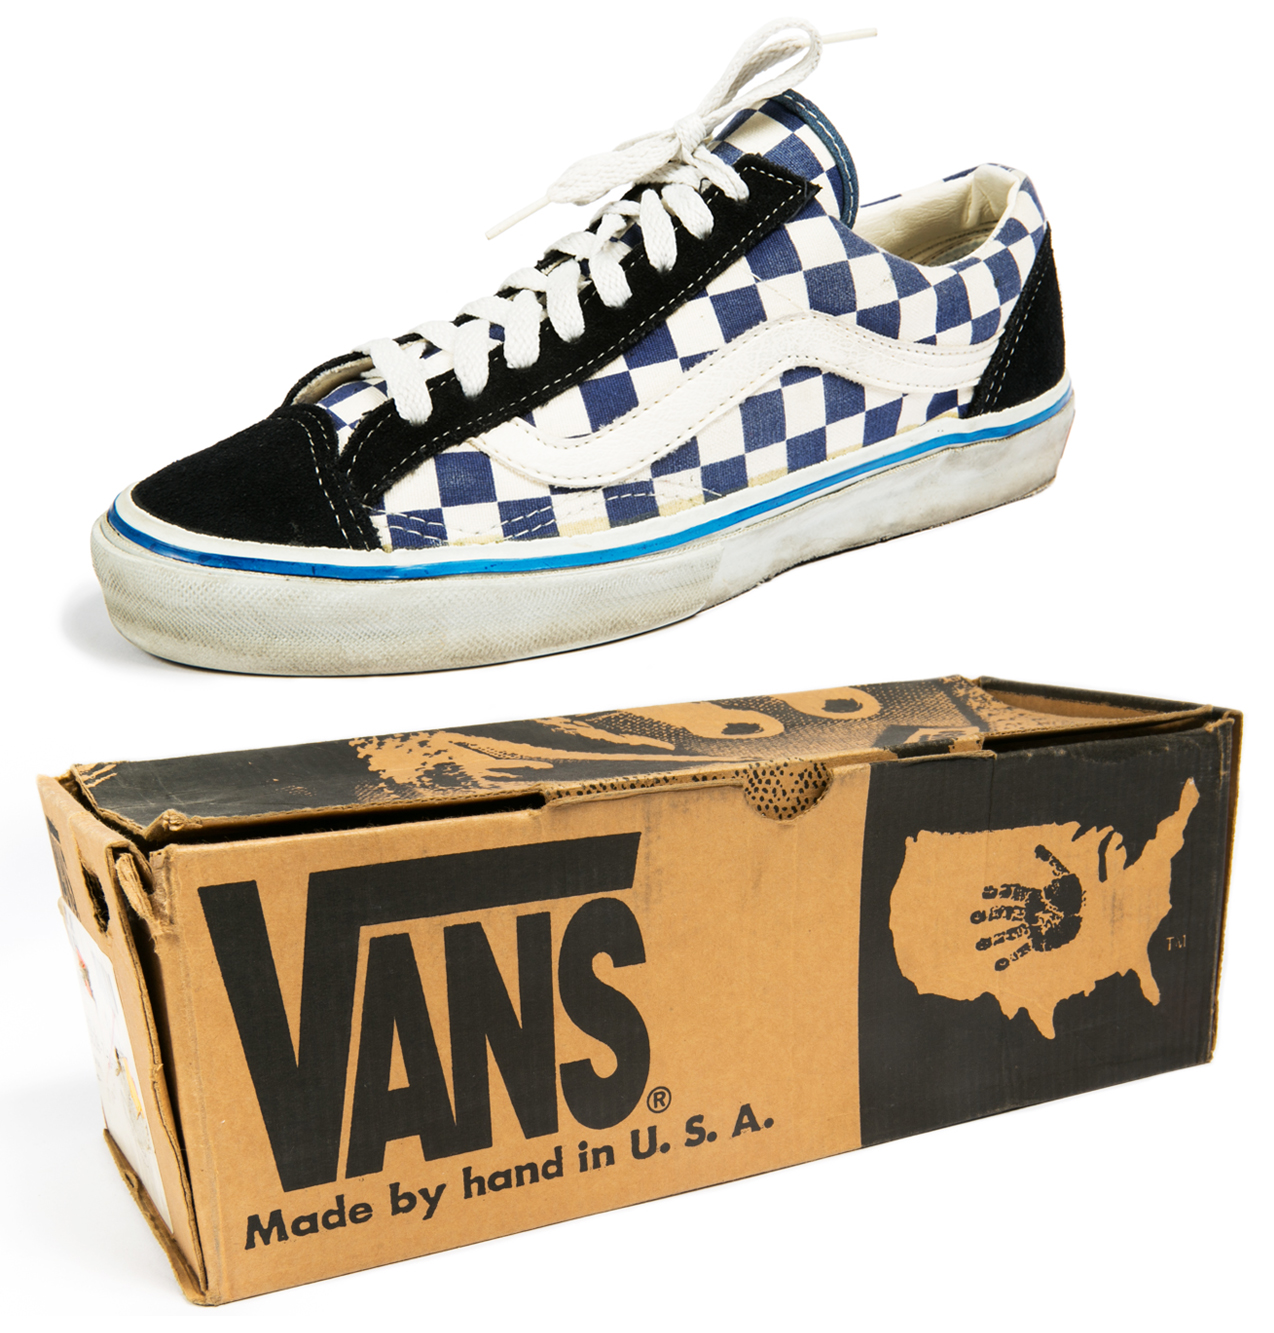 The Old Skool was the first skate shoe to incorporate leather and the famous Vans Sidestripe in the 1970s.